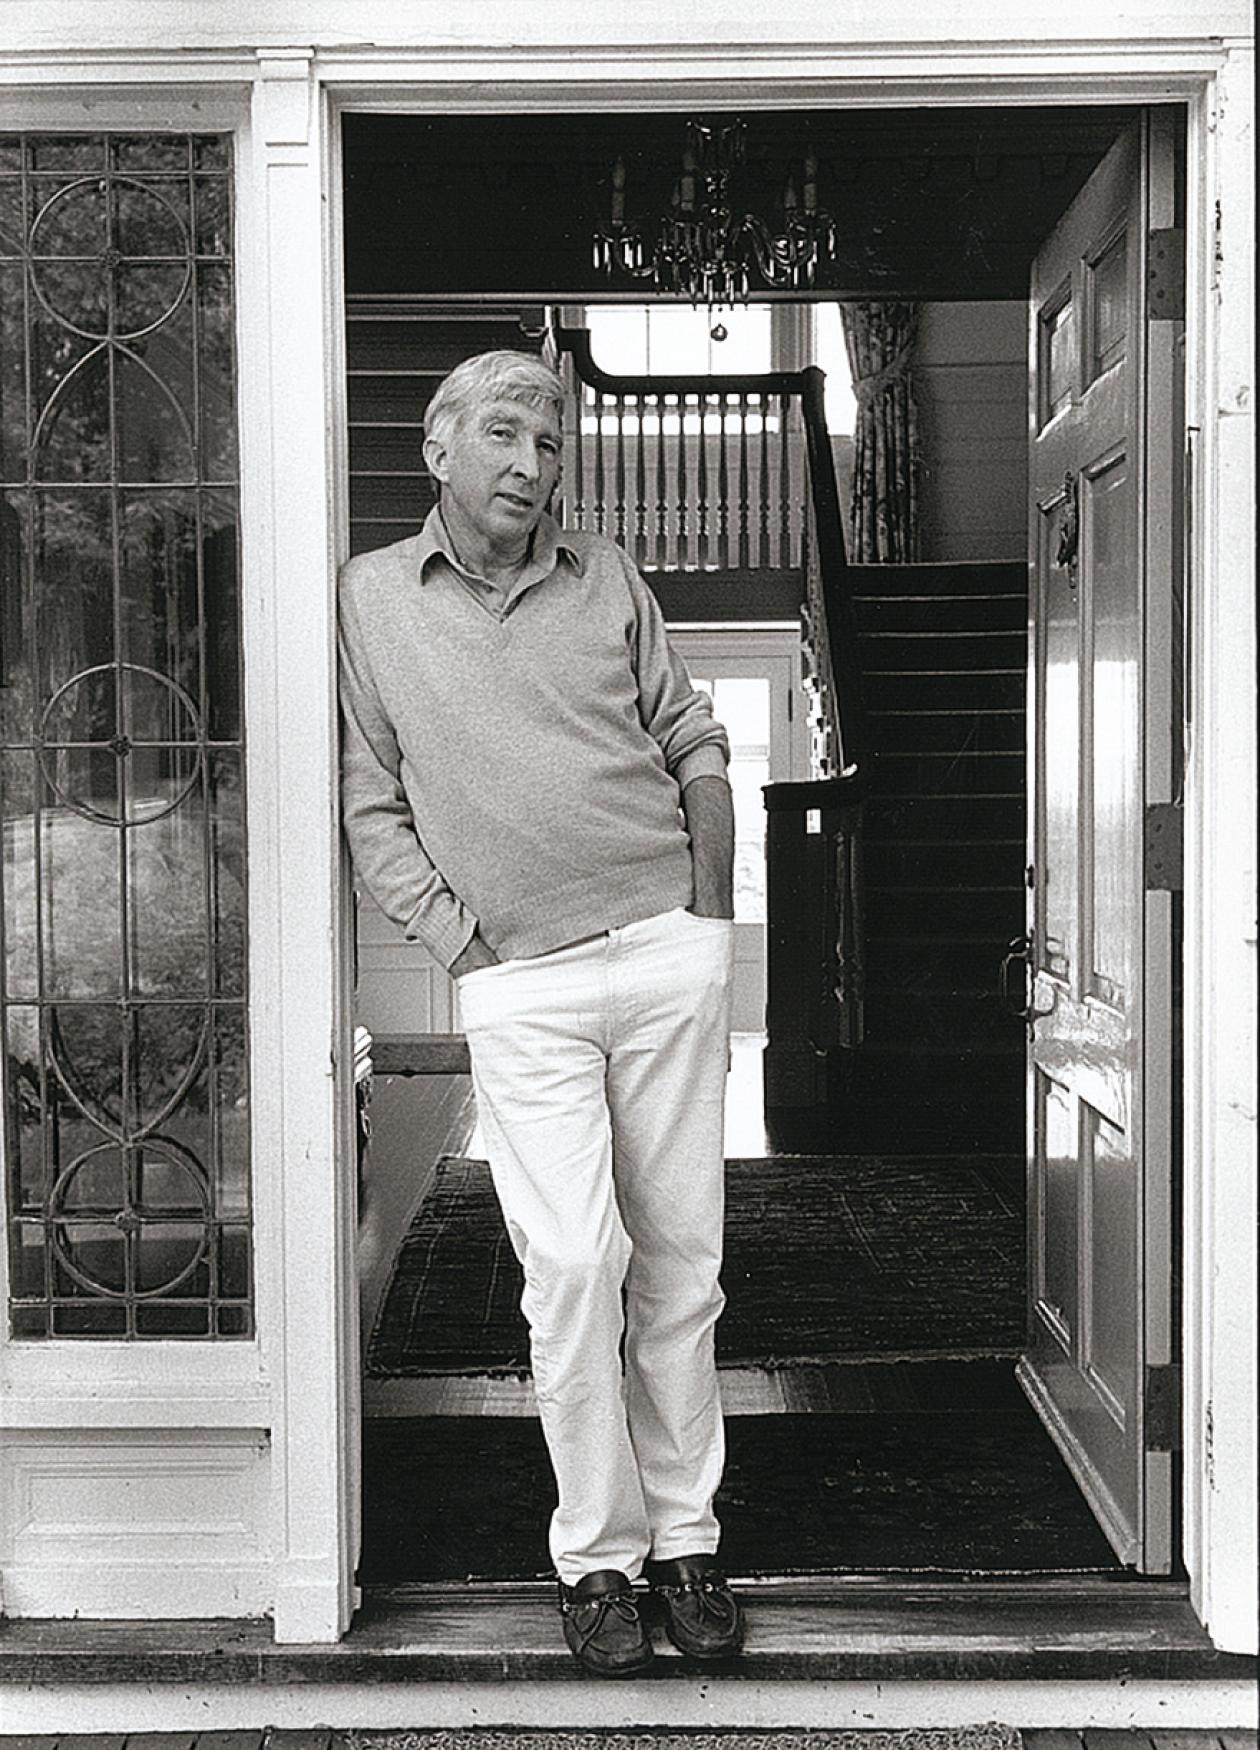 Black and white photo of man leaning against doorway